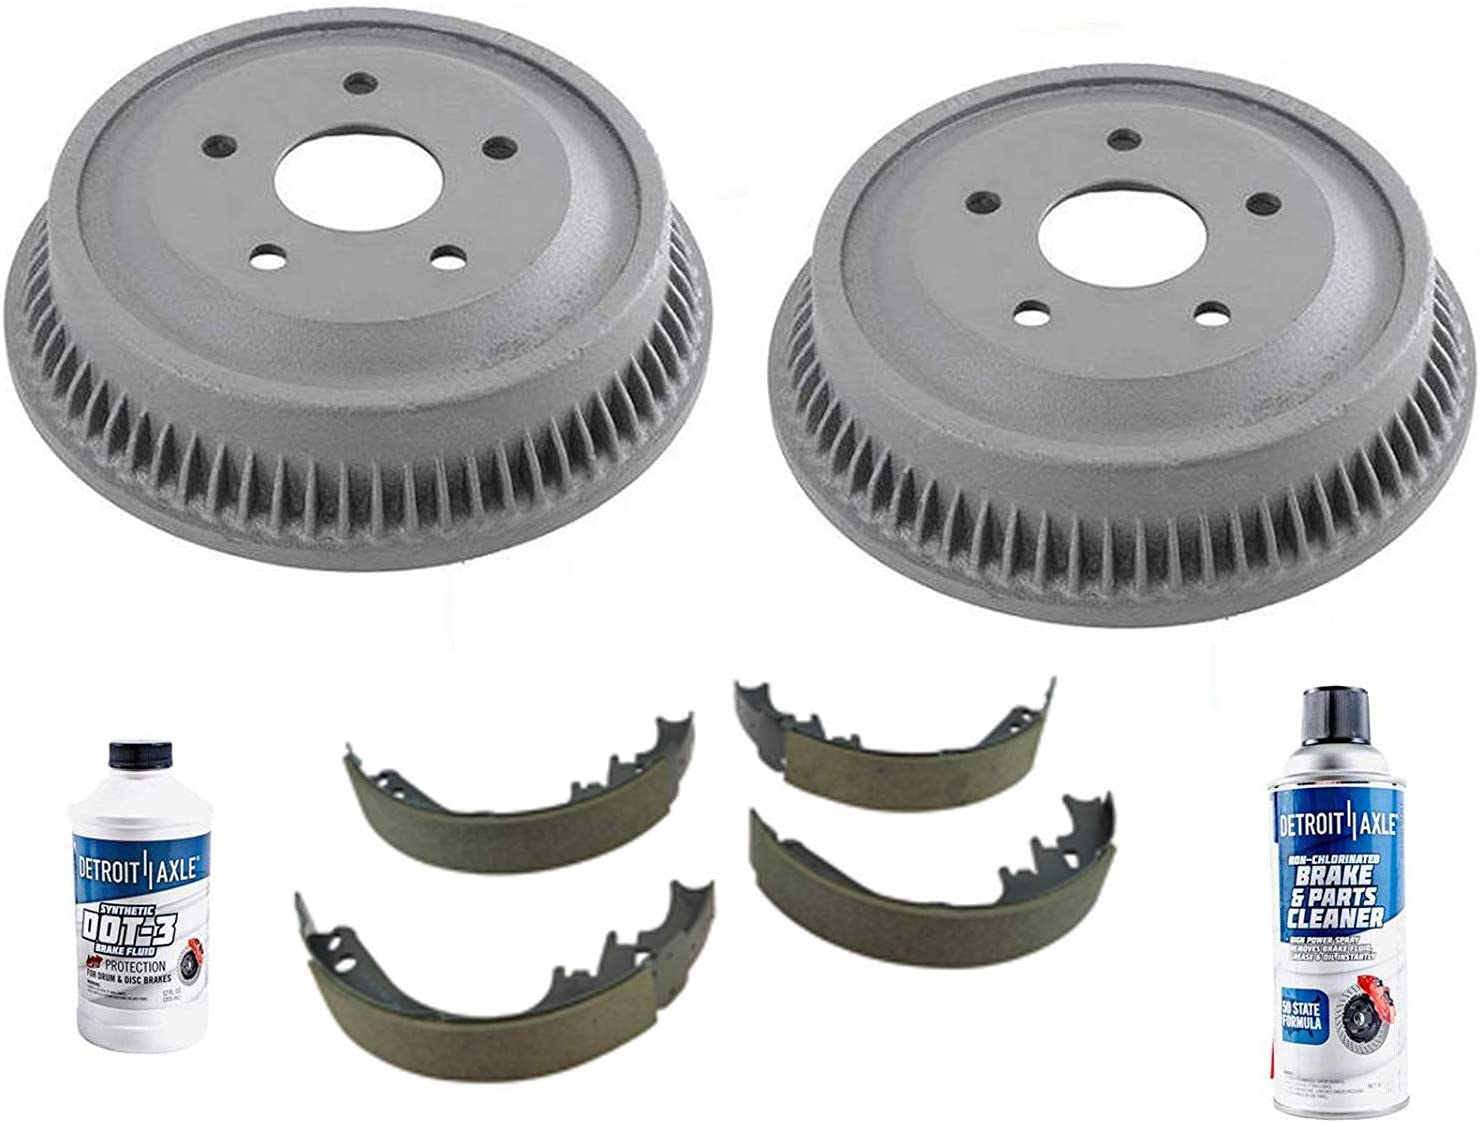 Detroit Axle Shipping included - Pair 2 National uniform free shipping Rear Shoes w Ceramic Drum Brake